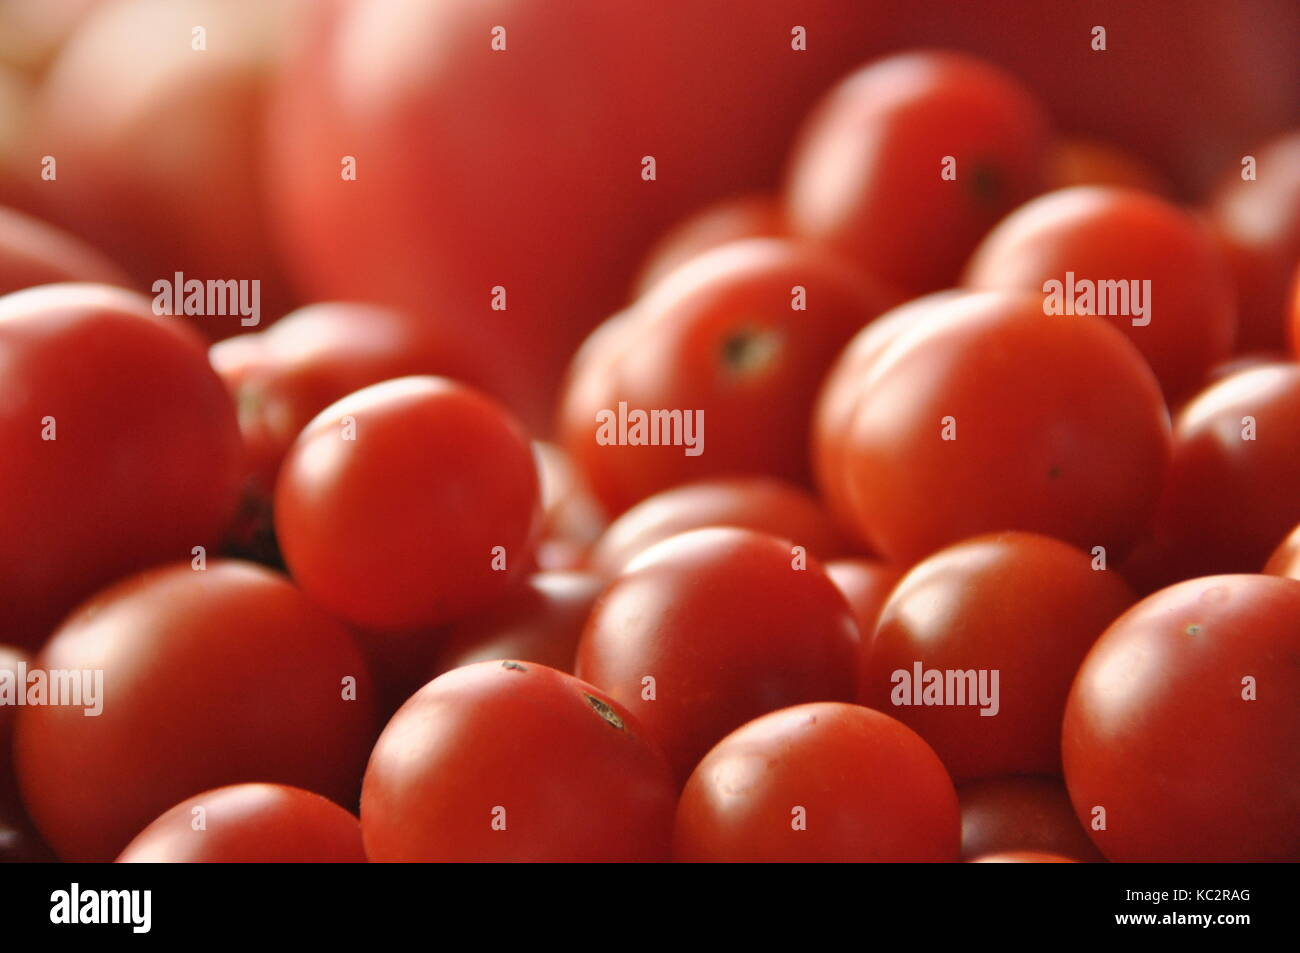 Picking tomatoes. Tomato and raspberry cocktail. Vegetables. Stock Photo